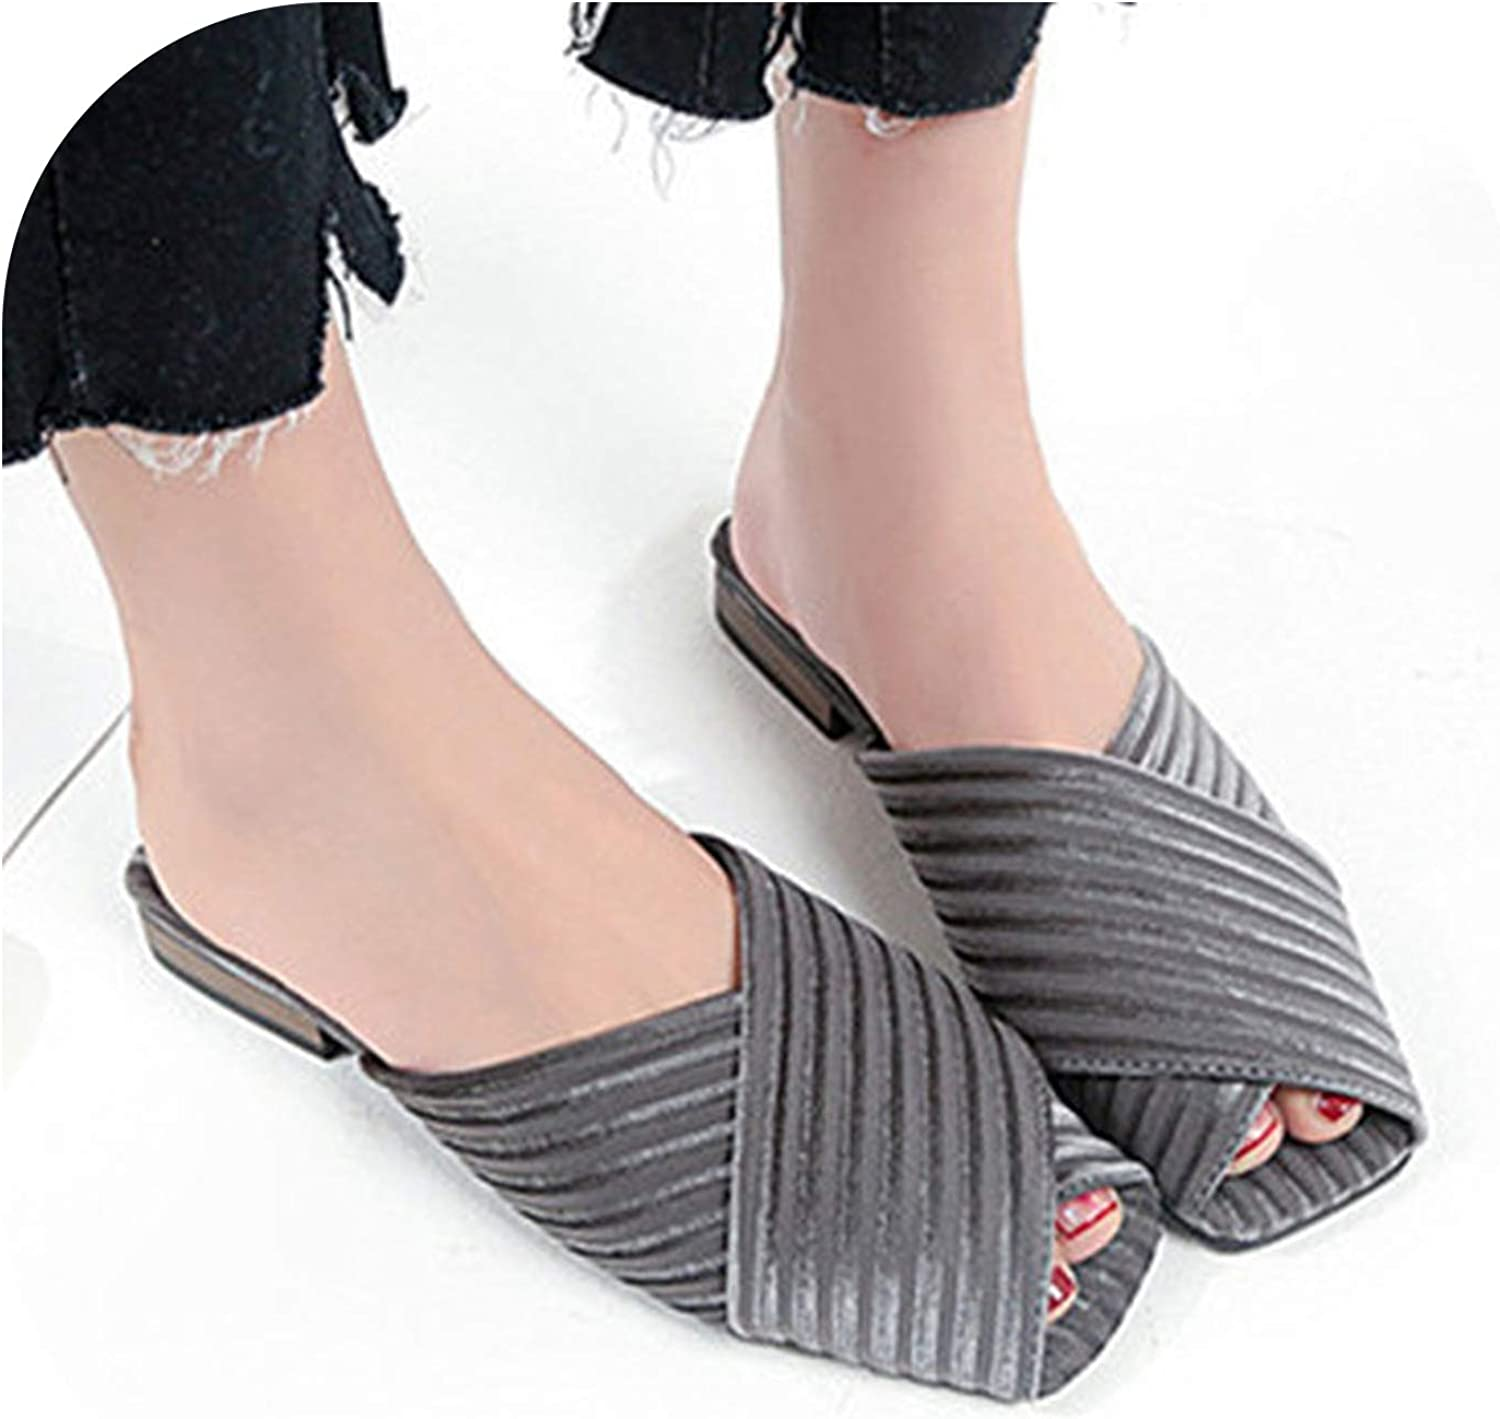 Women Sandals Middle Heels Mules shoes Party peep Toe Slip-on shoes Slippers